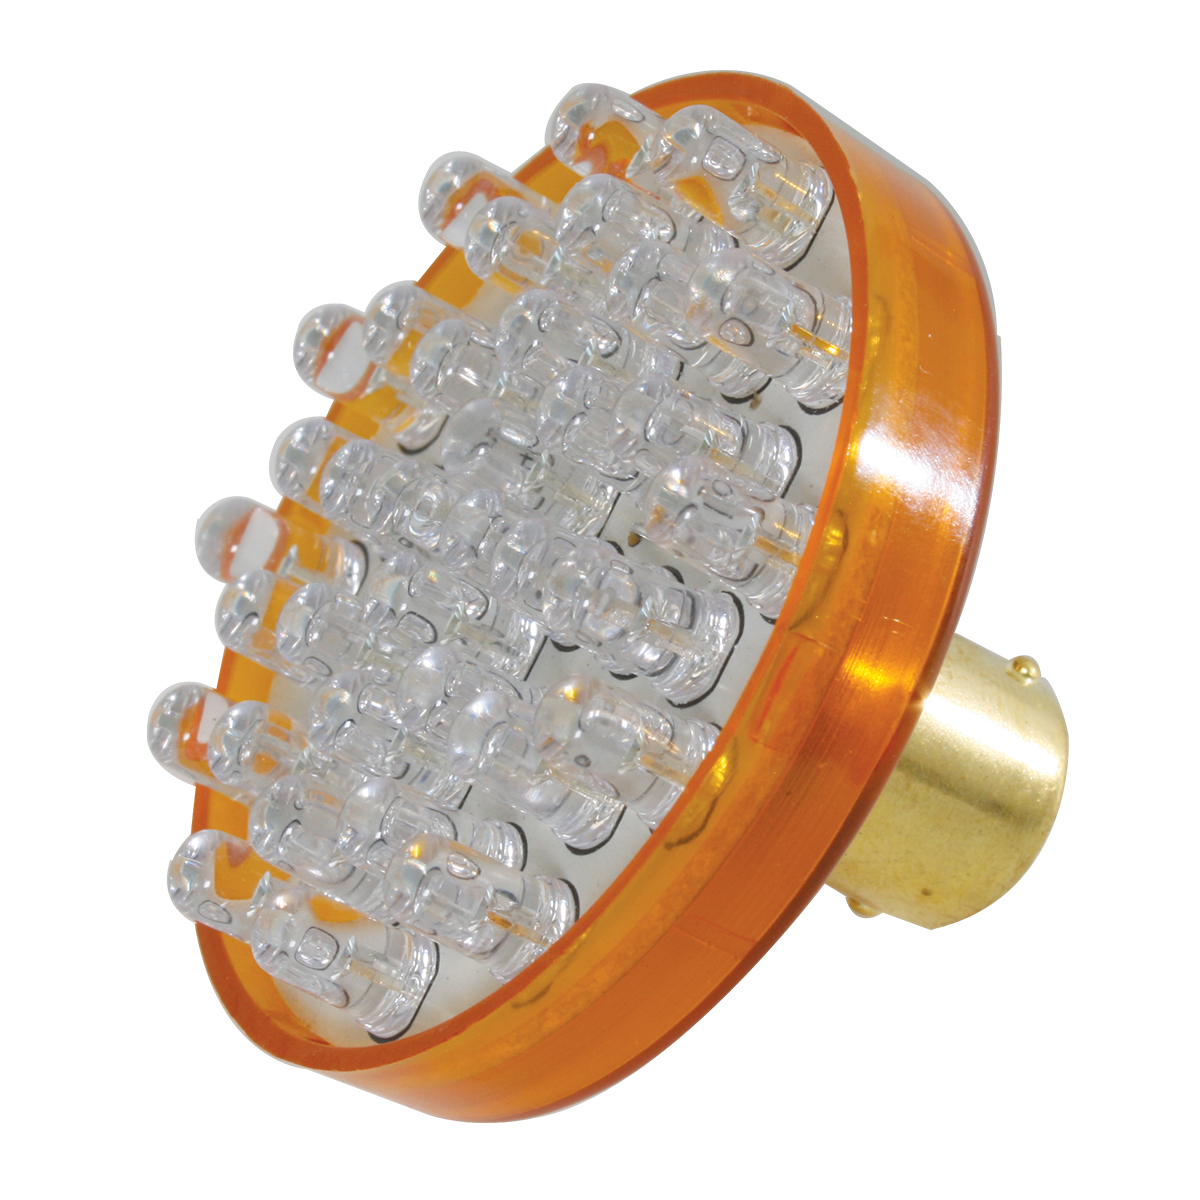 83940 Amber 1156 Single Directional 36 LED Light Bulb